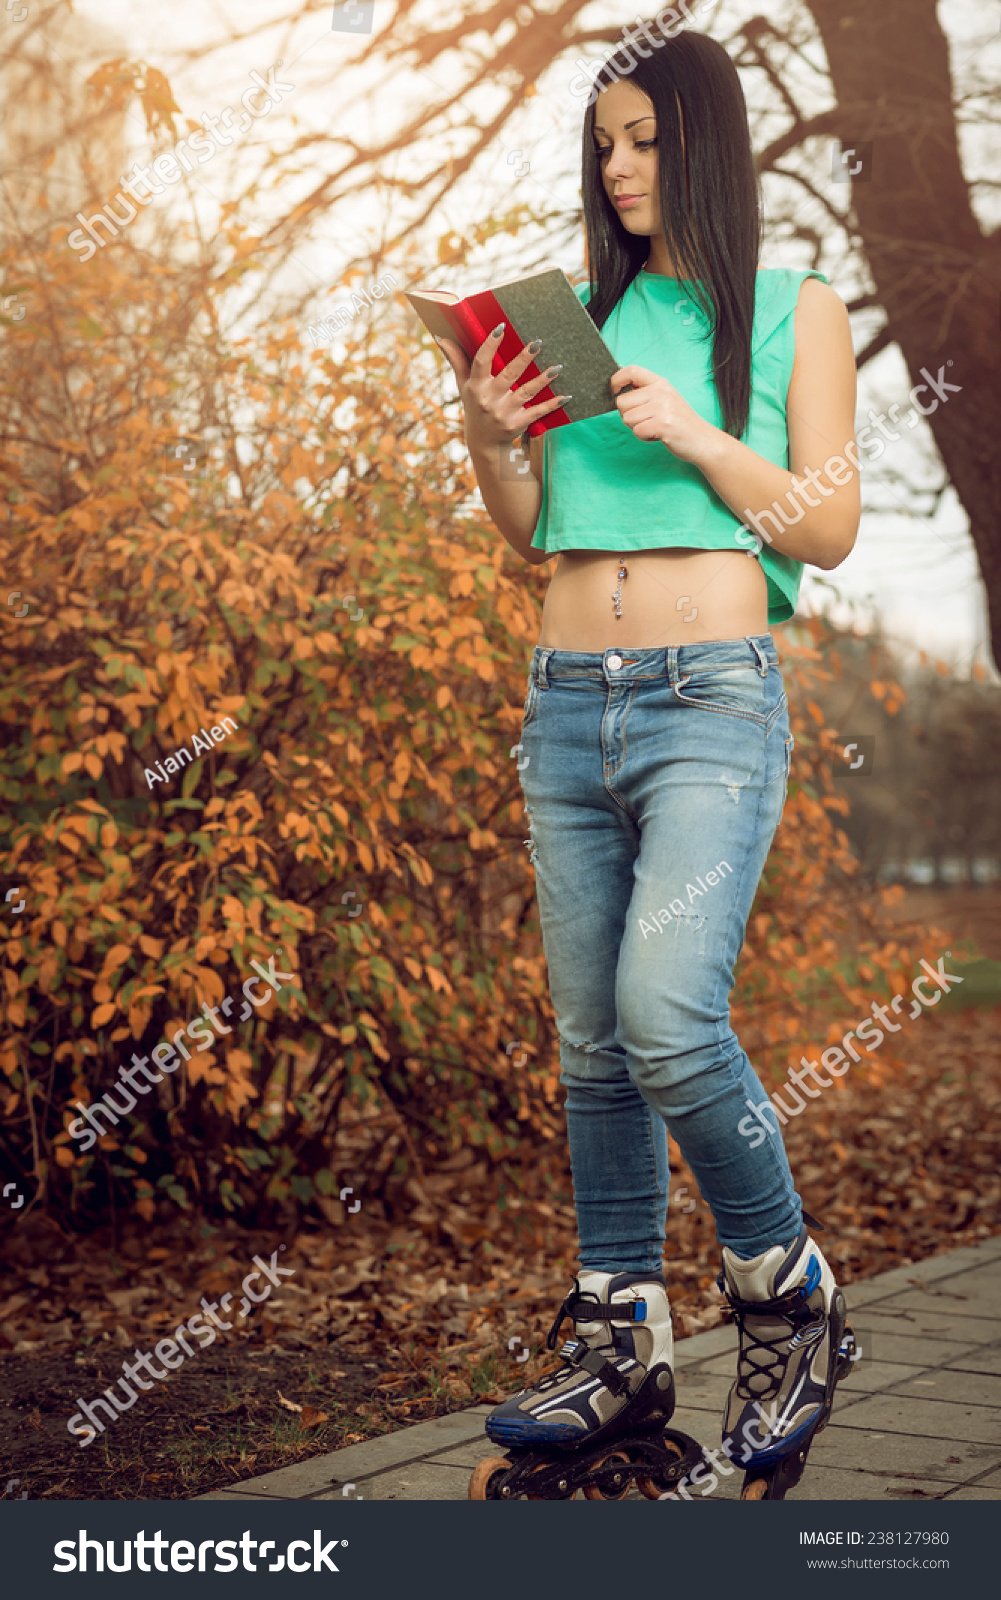 Roller skates book - Young Adult Girl Reading A Book On Roller Skates In Park Outdoor